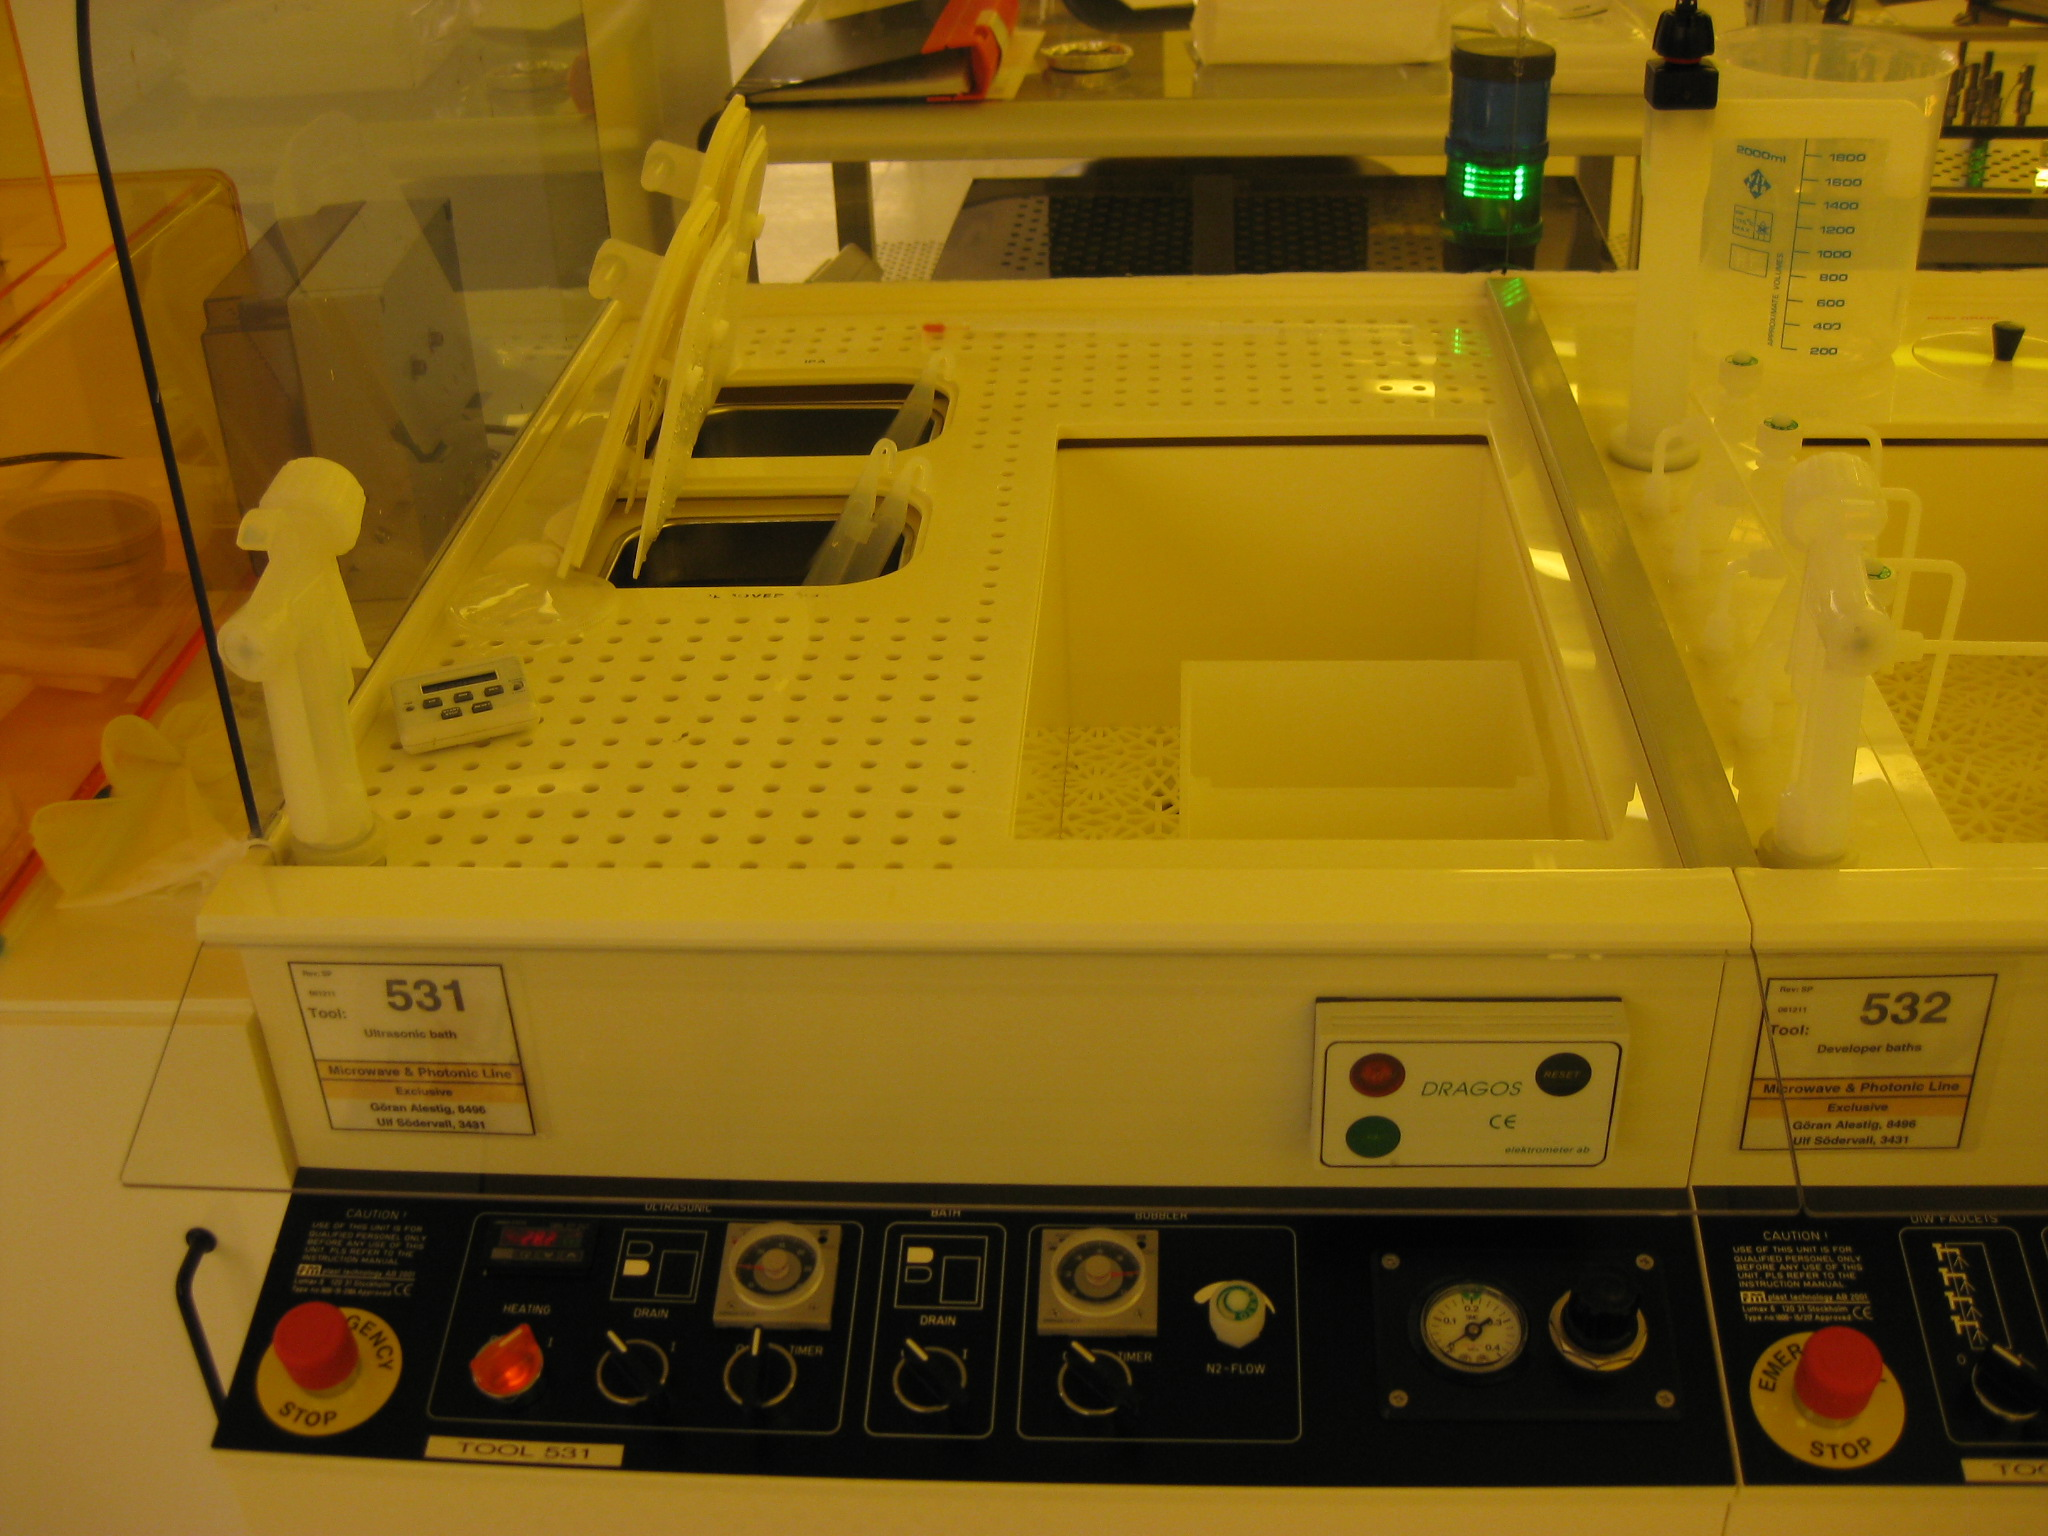 Picture of Wet Bench - Solvent - Ultrasonic bath - Microwave line